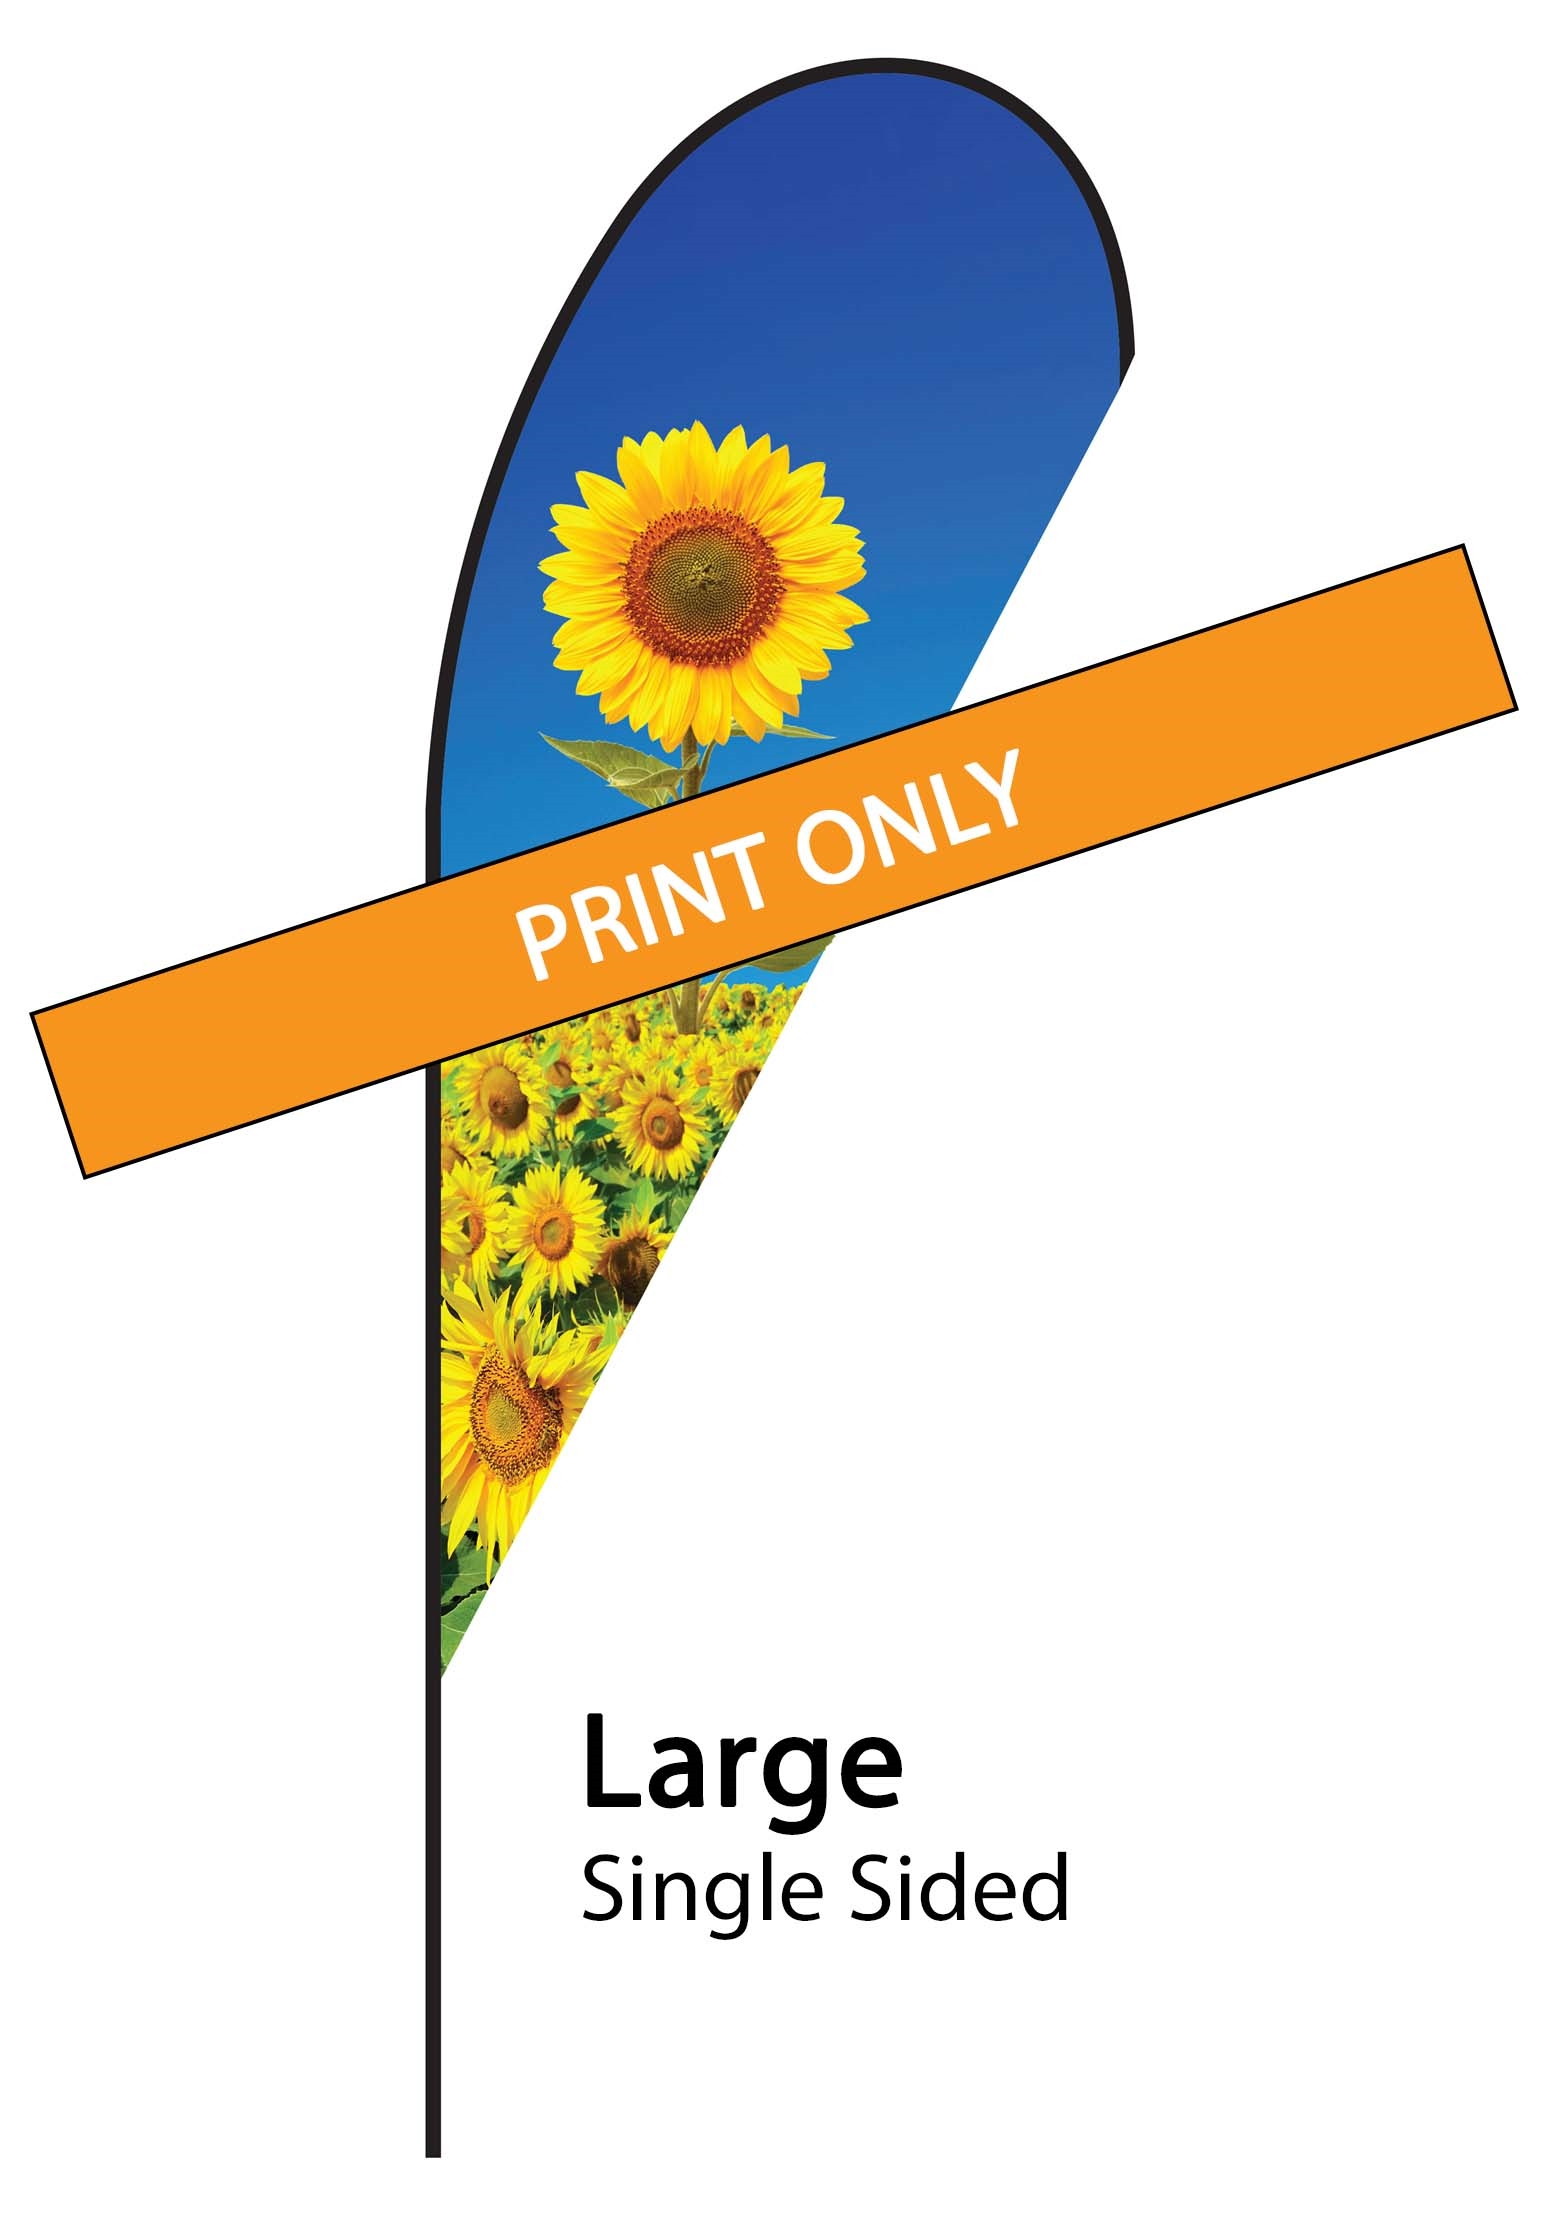 Teardrop Flag 12' Premium Single-Sided Print Only (Large)